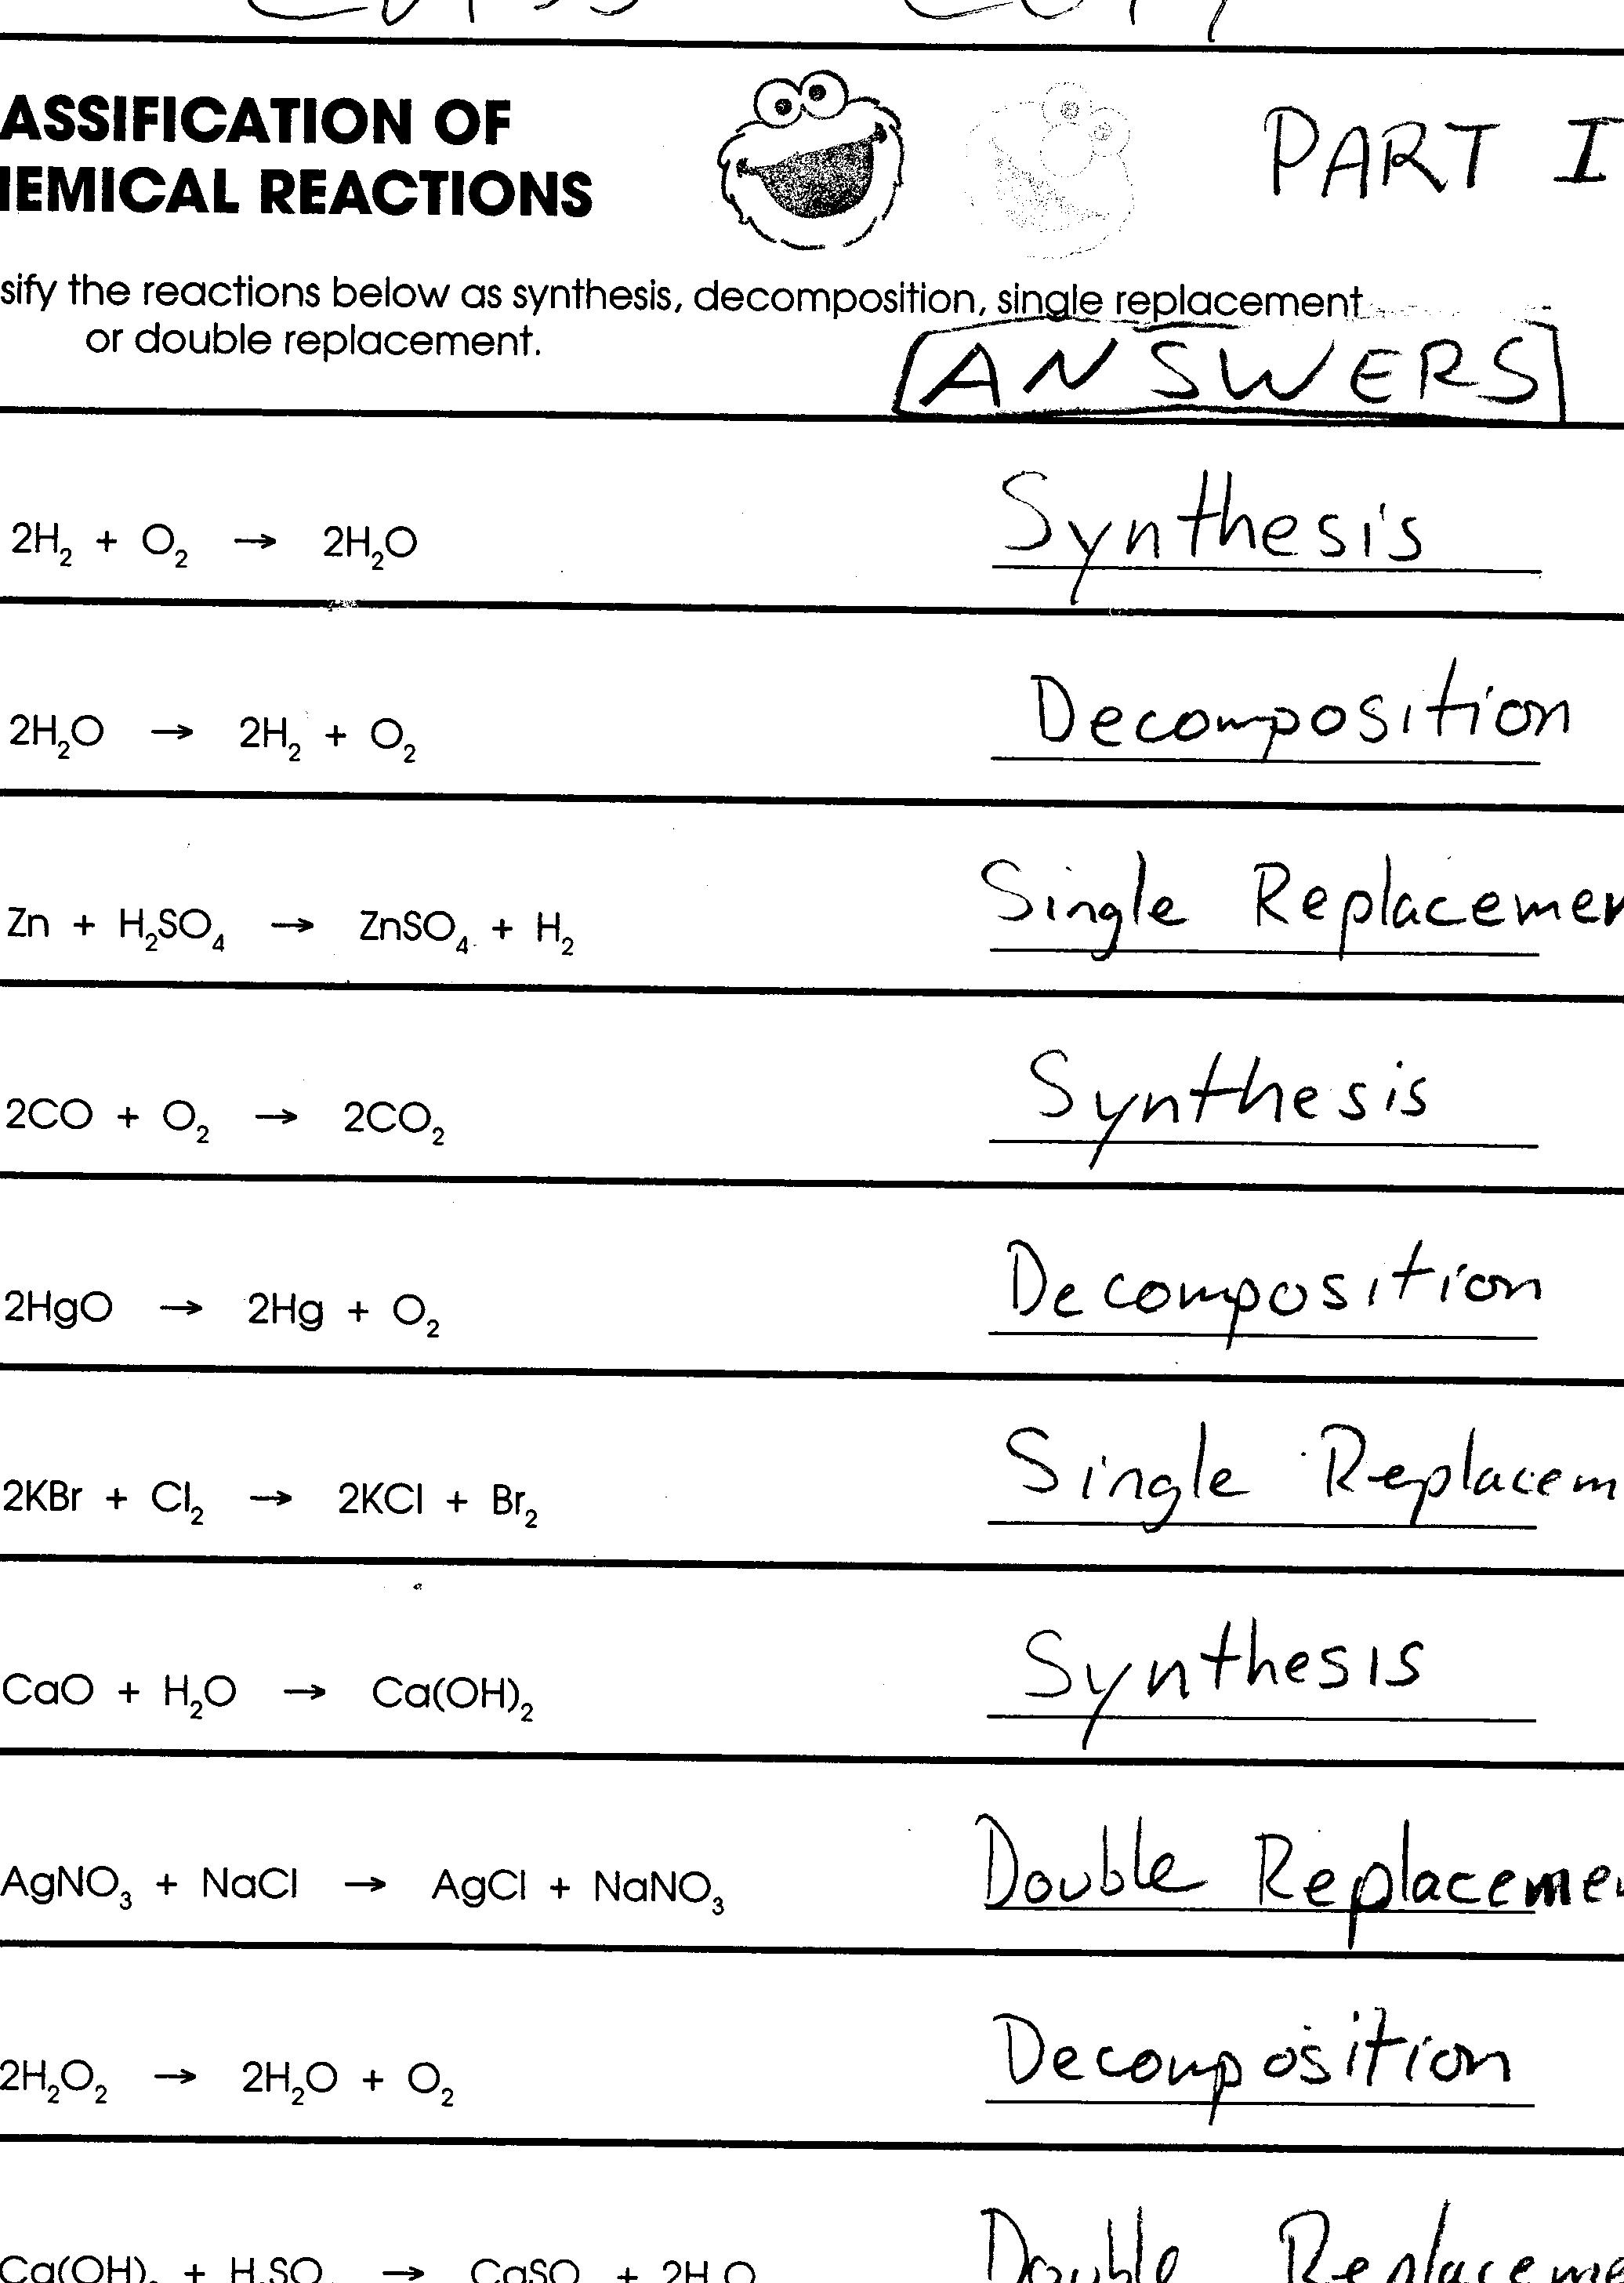 33 Chemical Reactions Worksheet Answer Key